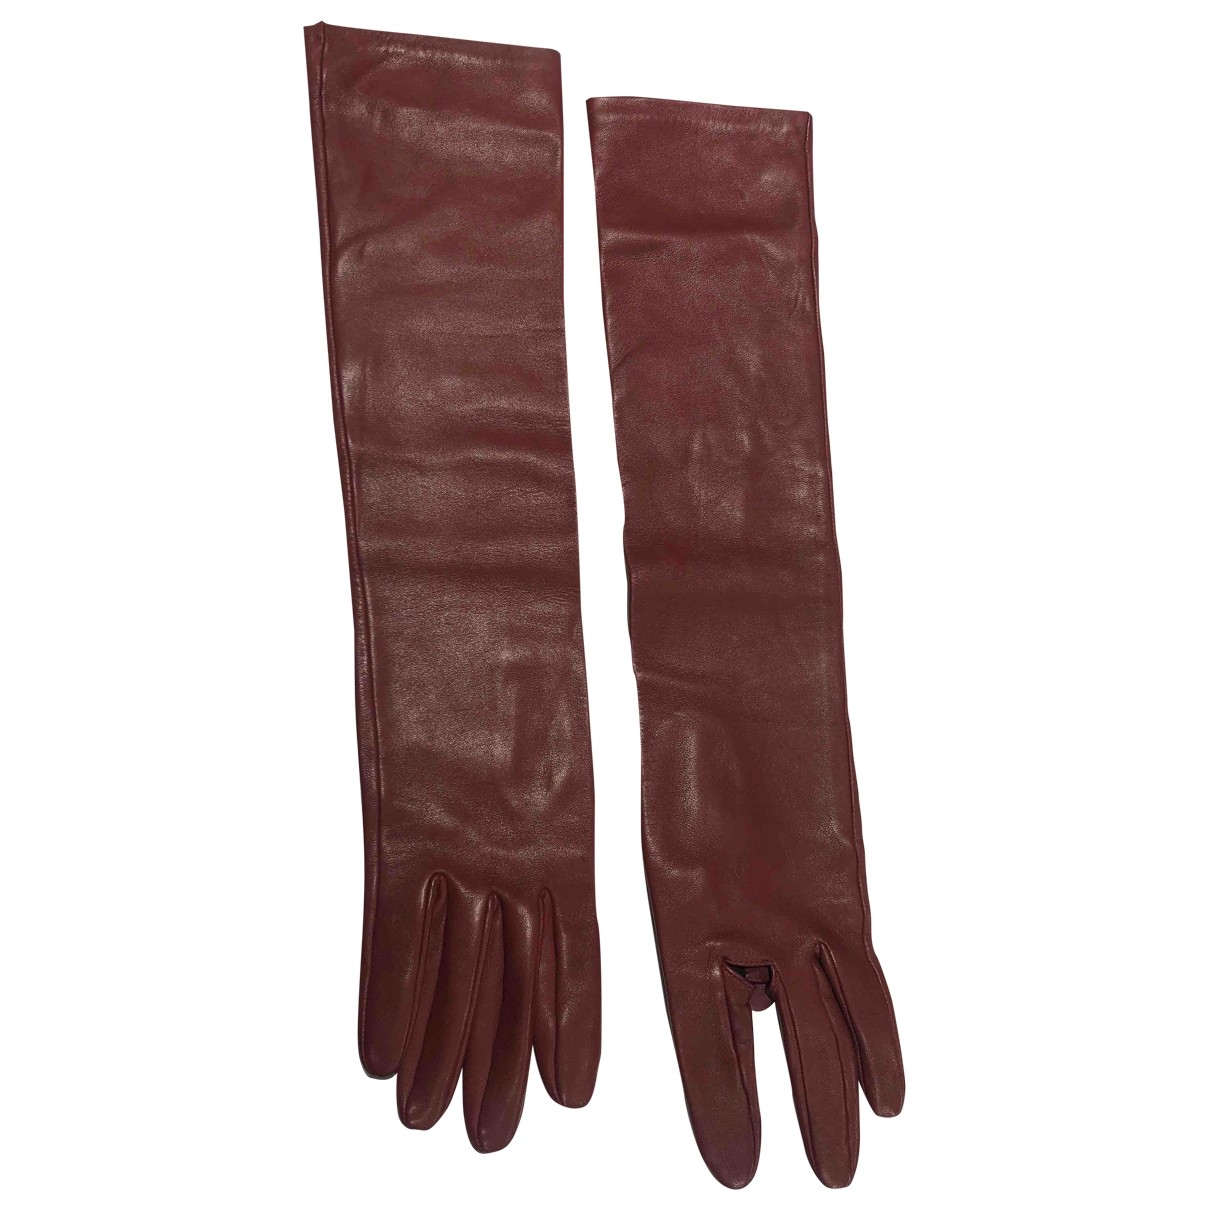 Acne Studios \N Brown Leather Gloves for Women S International